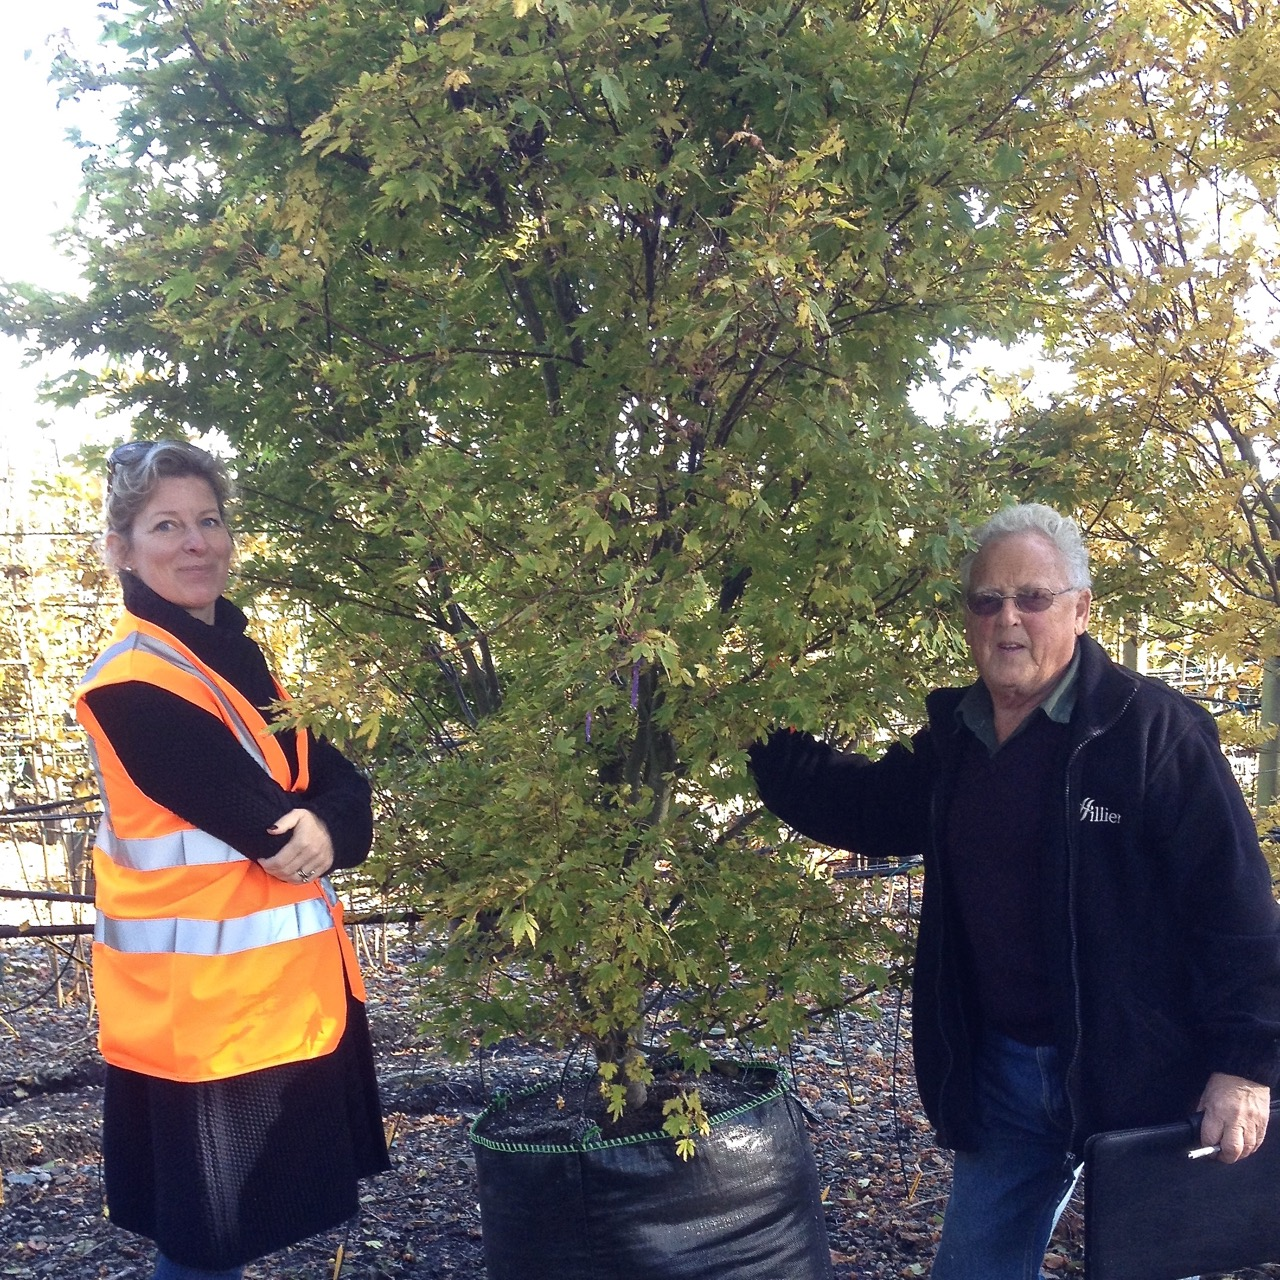 JO Alderson Phillips with Ricky of Hilliers tree nursery choosing a specimen acer